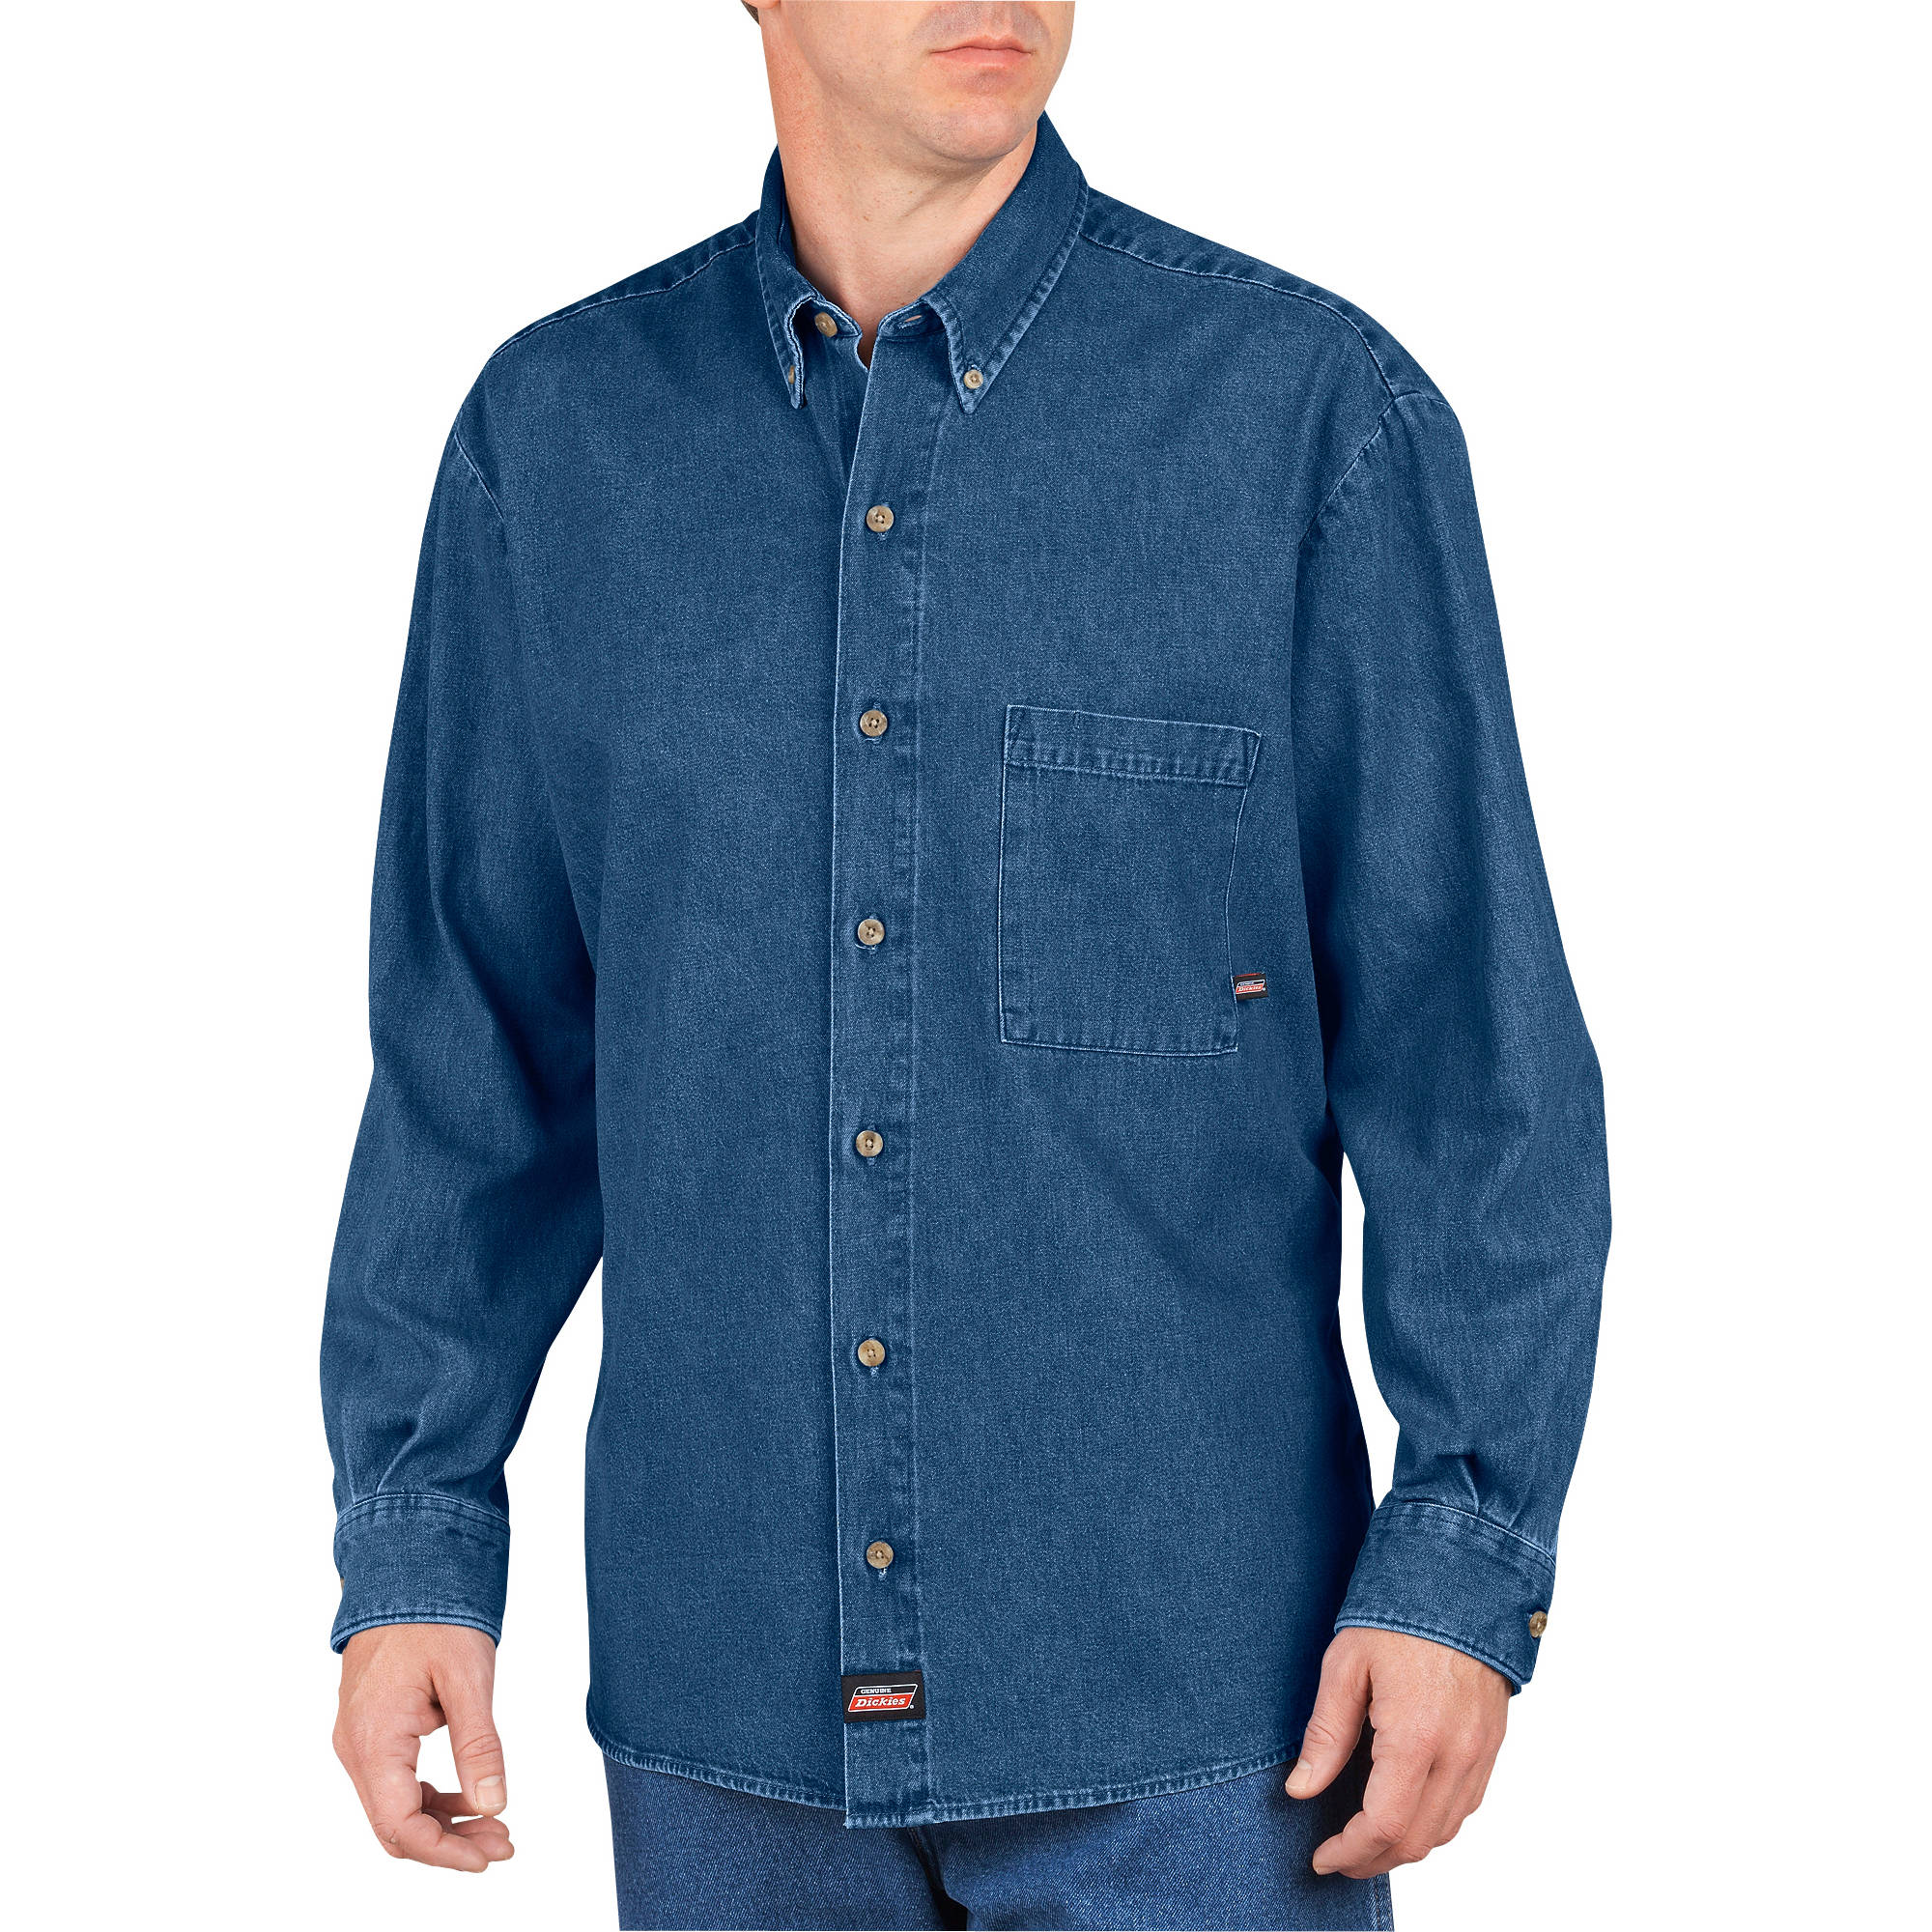 Big Men's Long Sleeve Denim Shirt